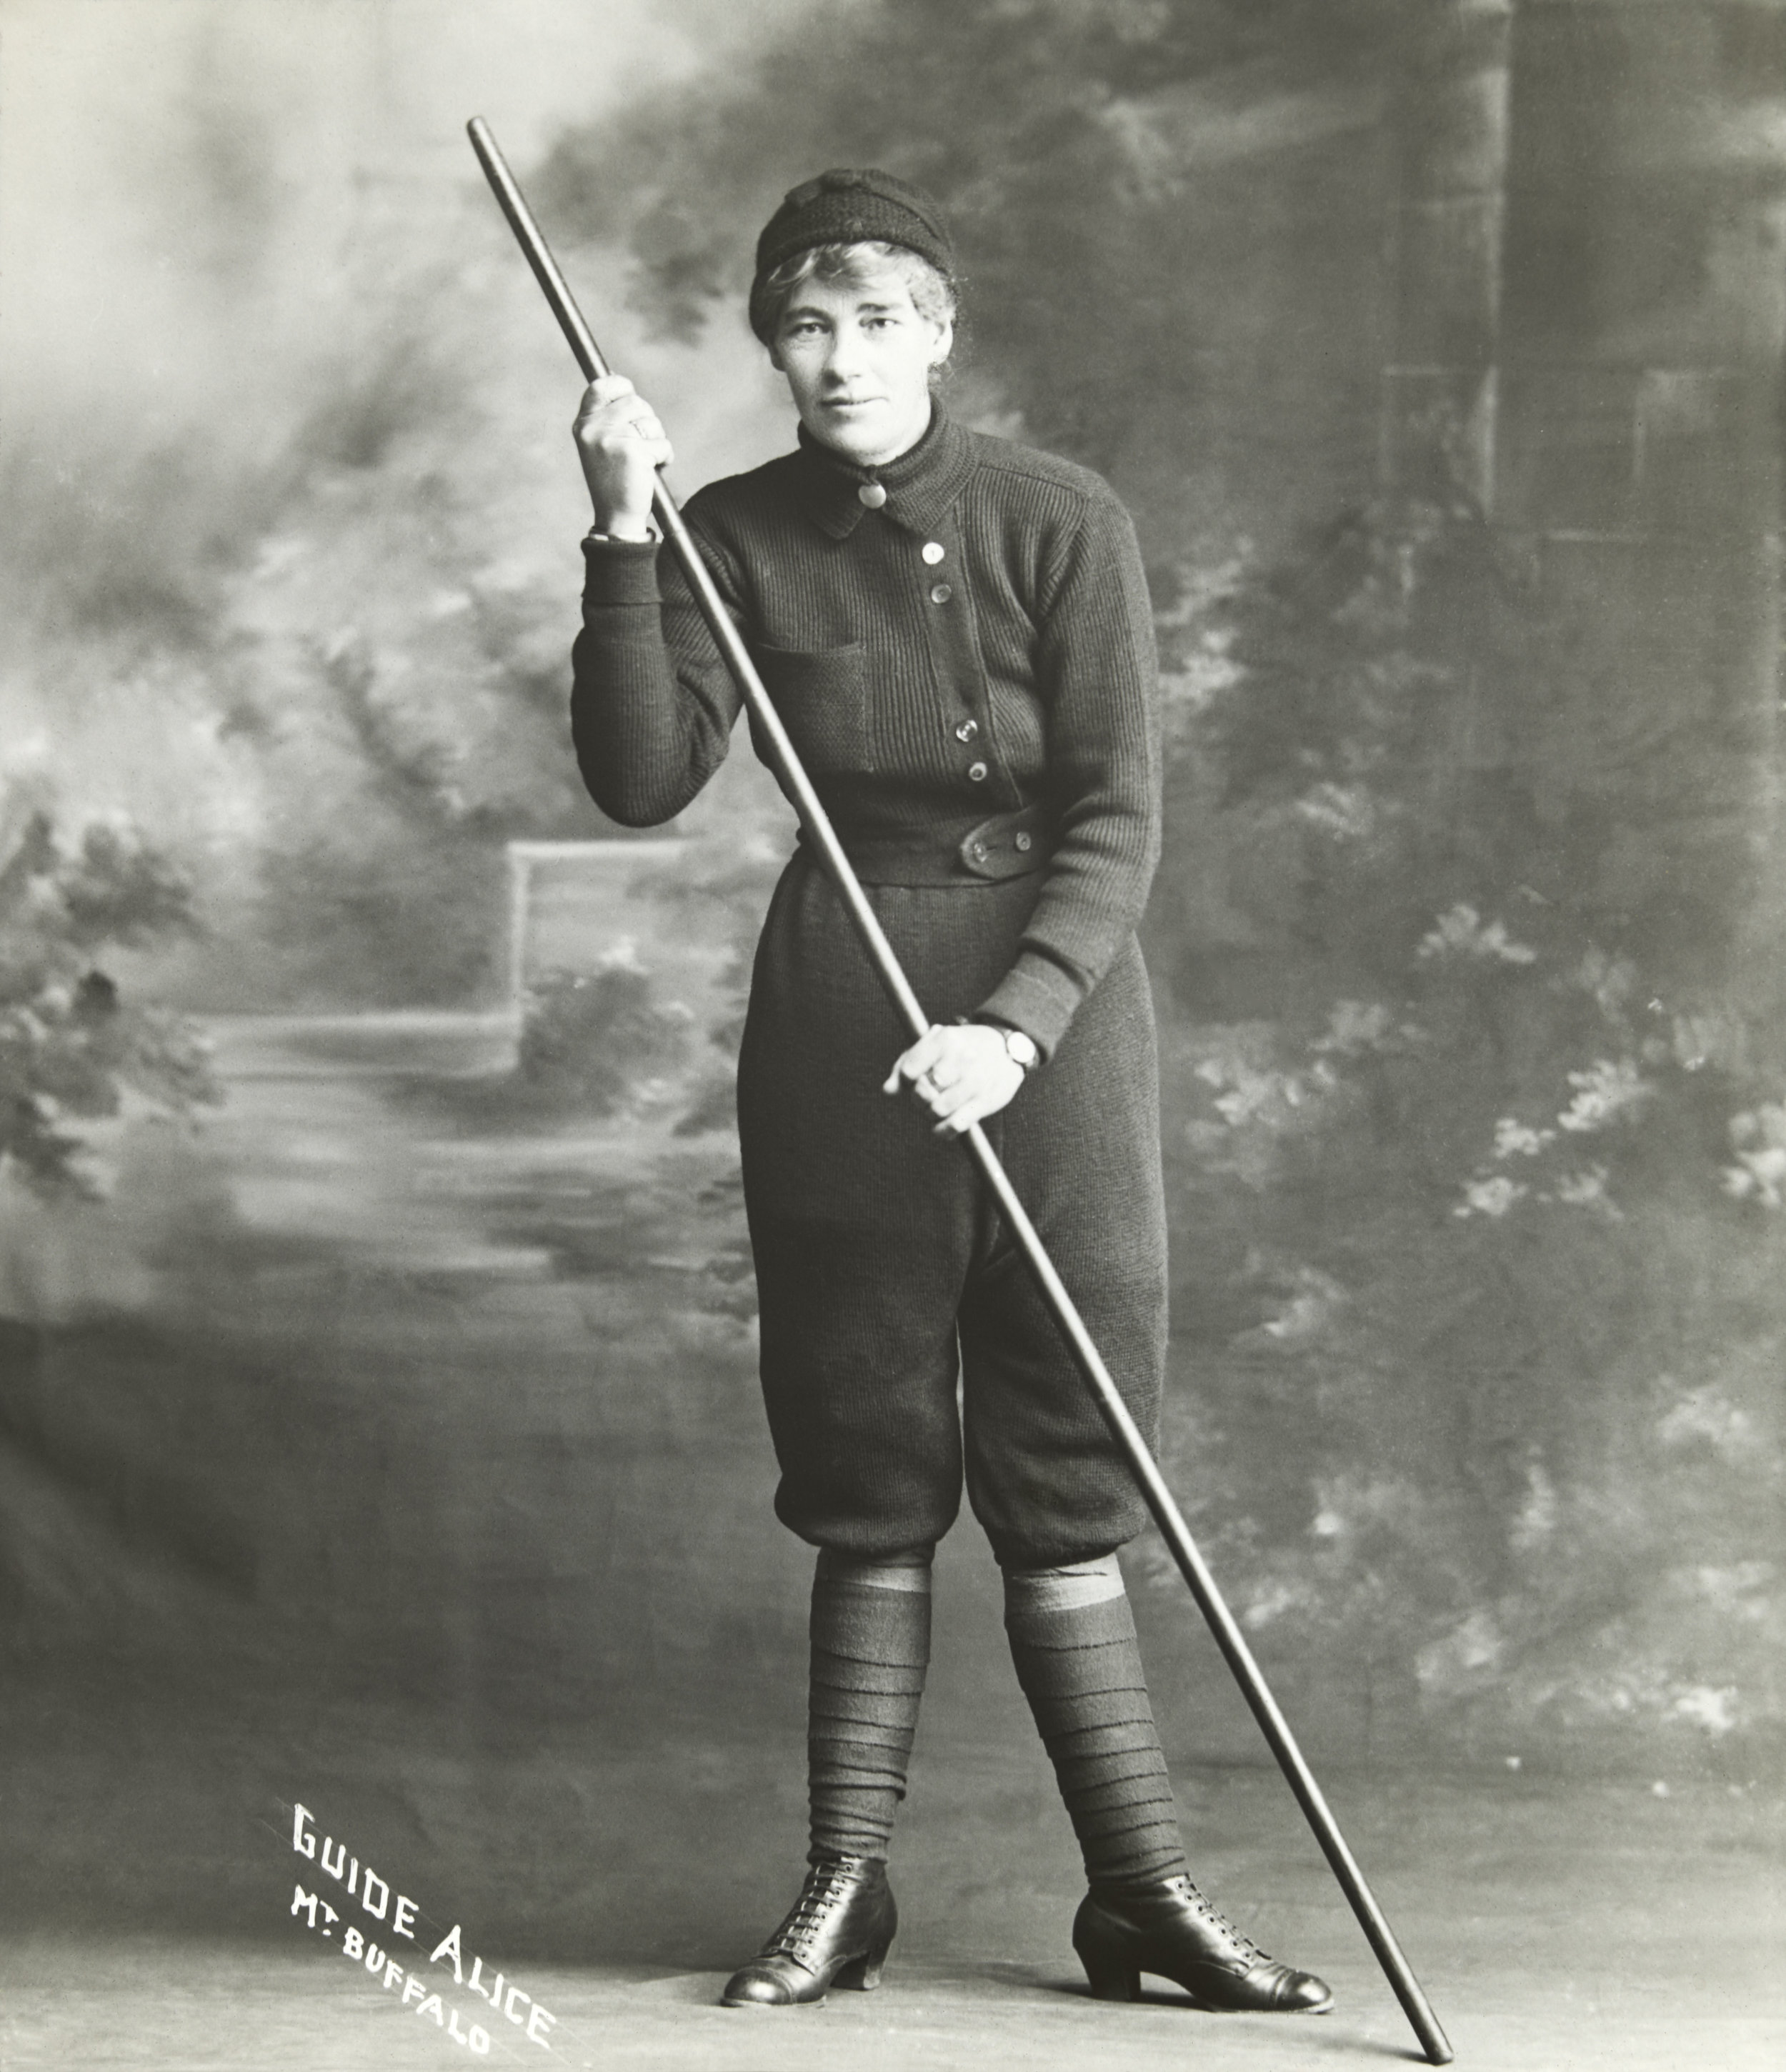 Alice Manfield collection, State Library of Victoria